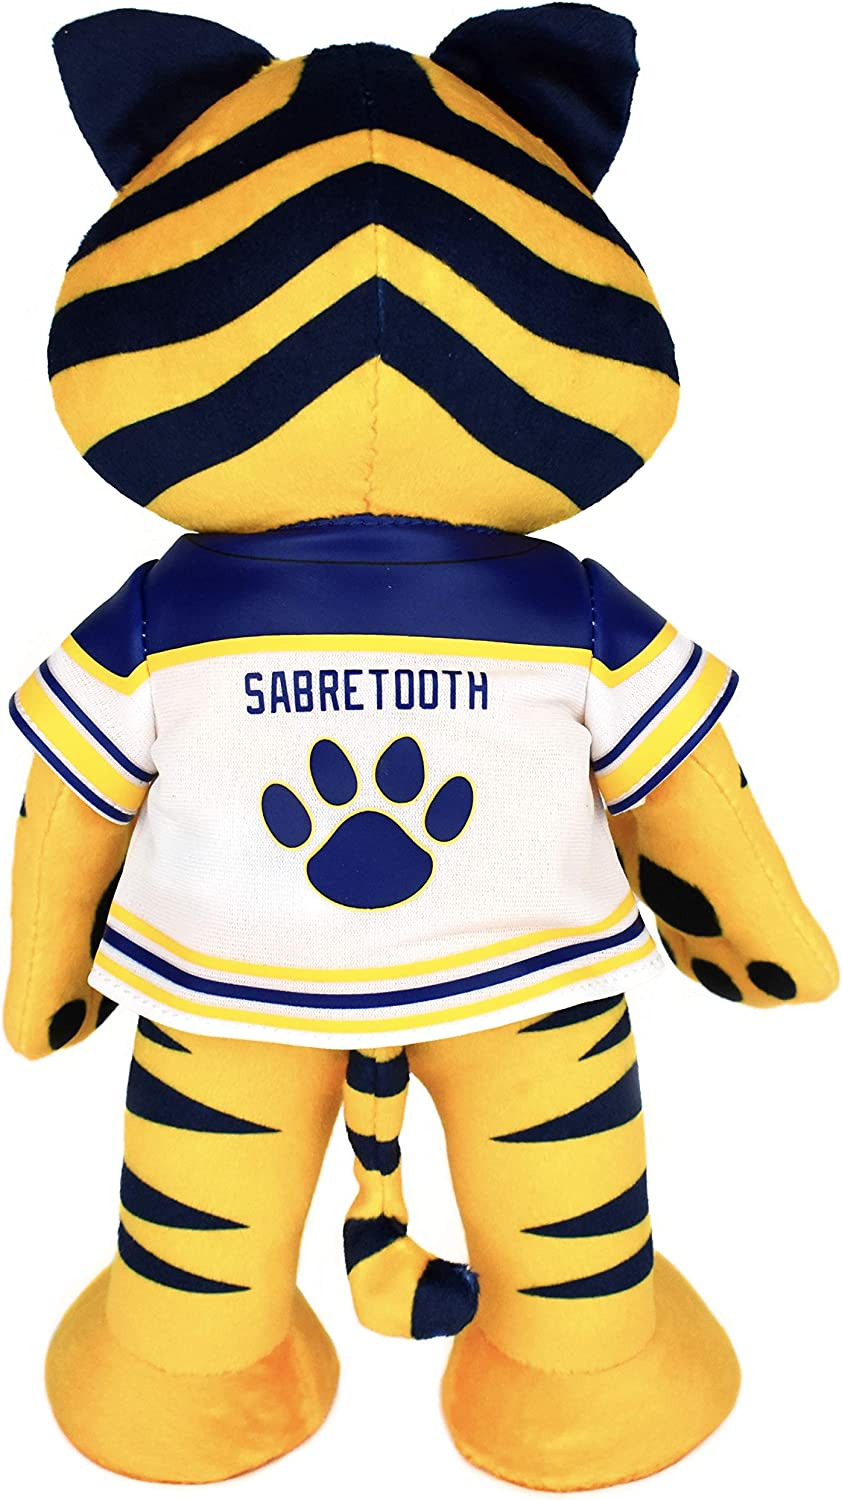 Bleacher Creatures Buffalo Sabres Sabertooth 10 Plush Figure A Mascot for Play or Display